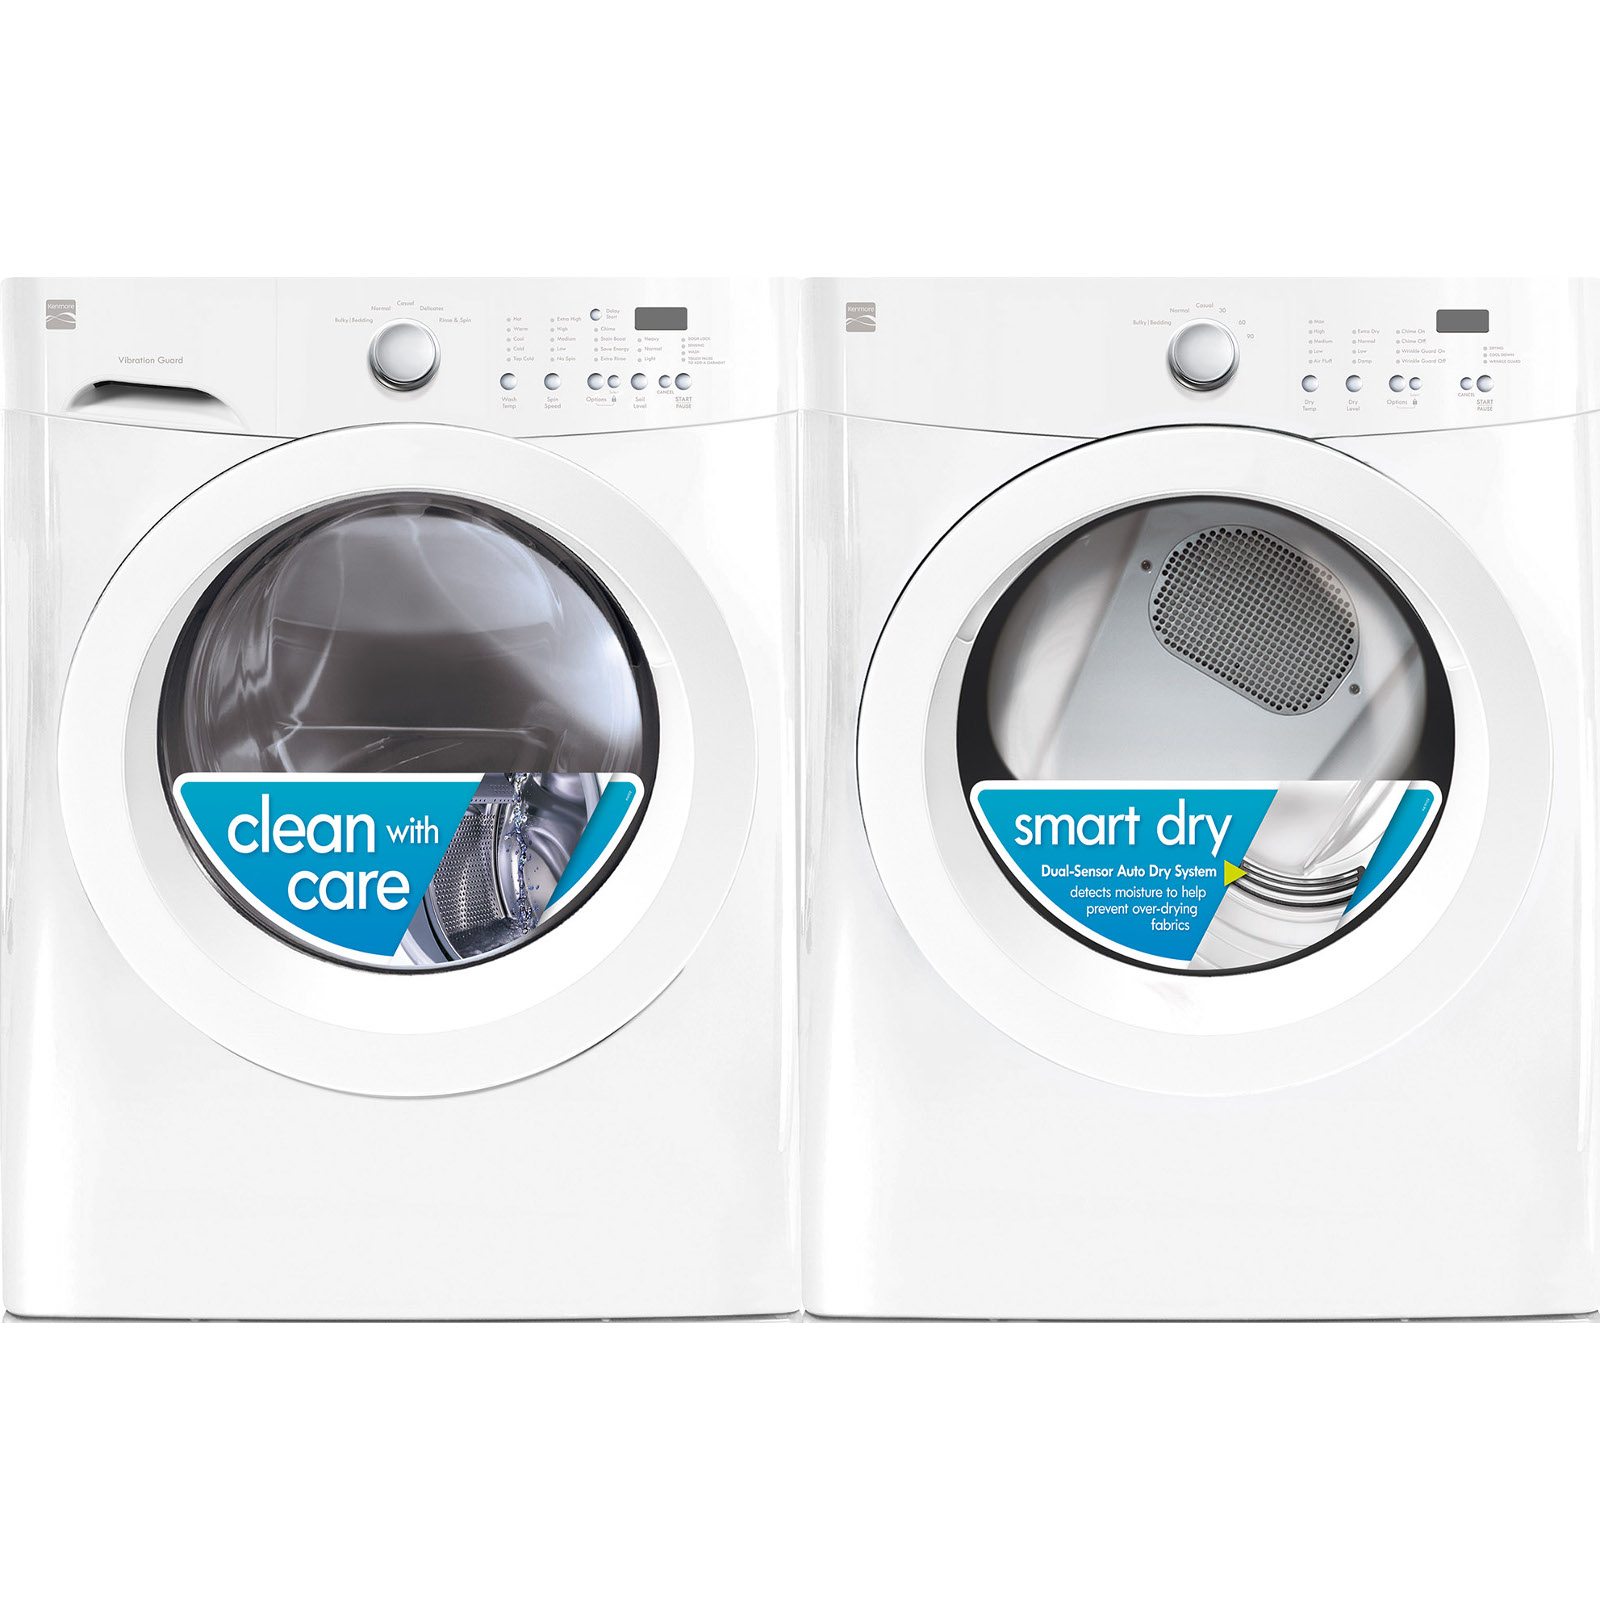 Kenmore 81122 7.0 cu. ft. Electric Dryer w/ Wrinkle Guard - White